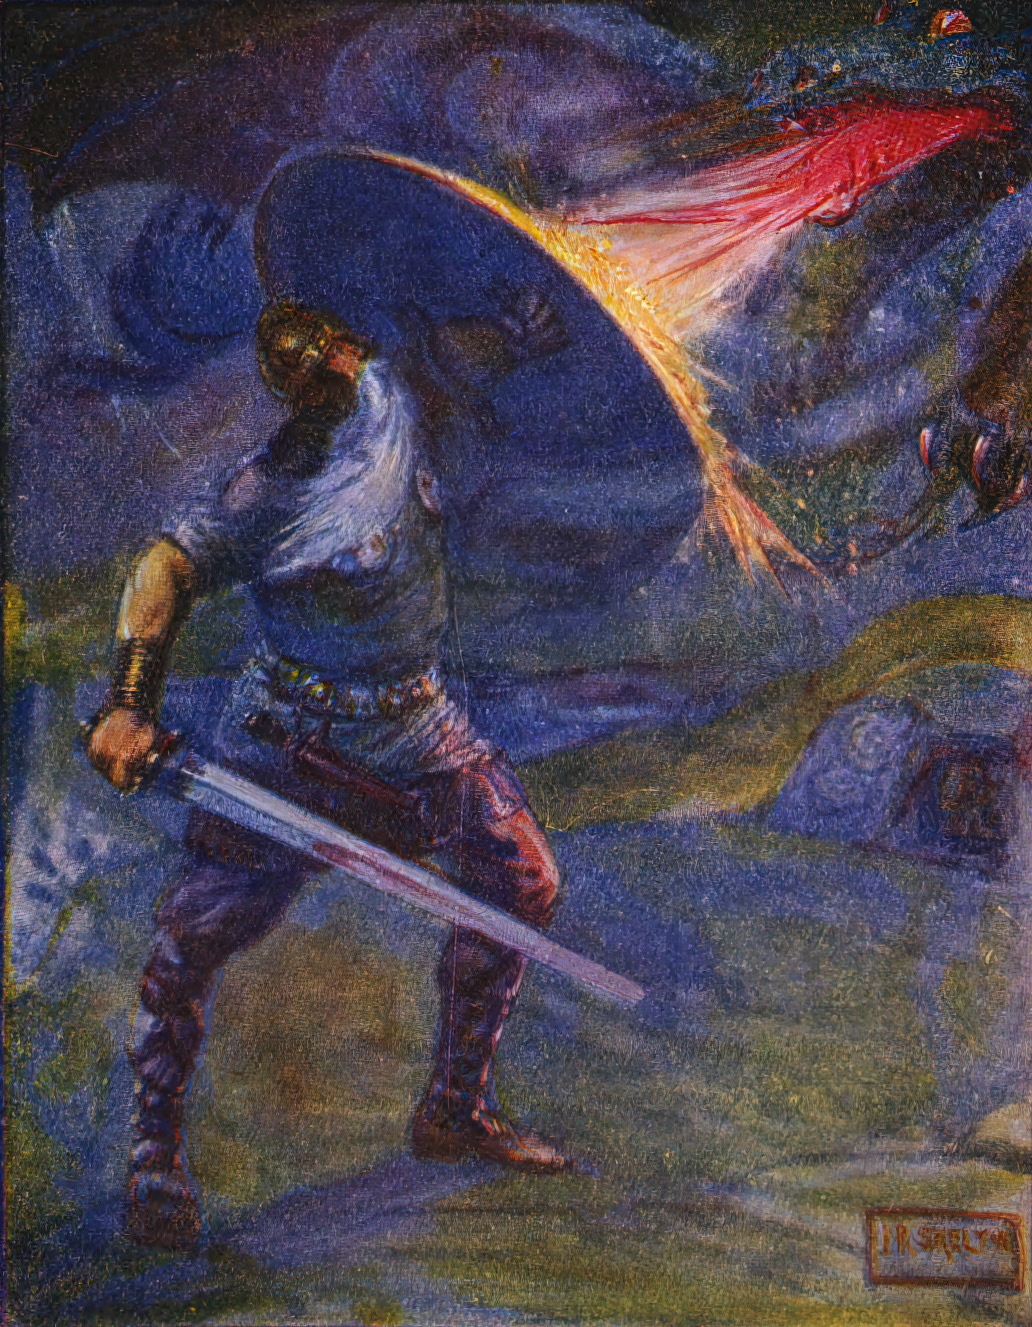 A literary analysis of the noble king in the epic poem beowulf